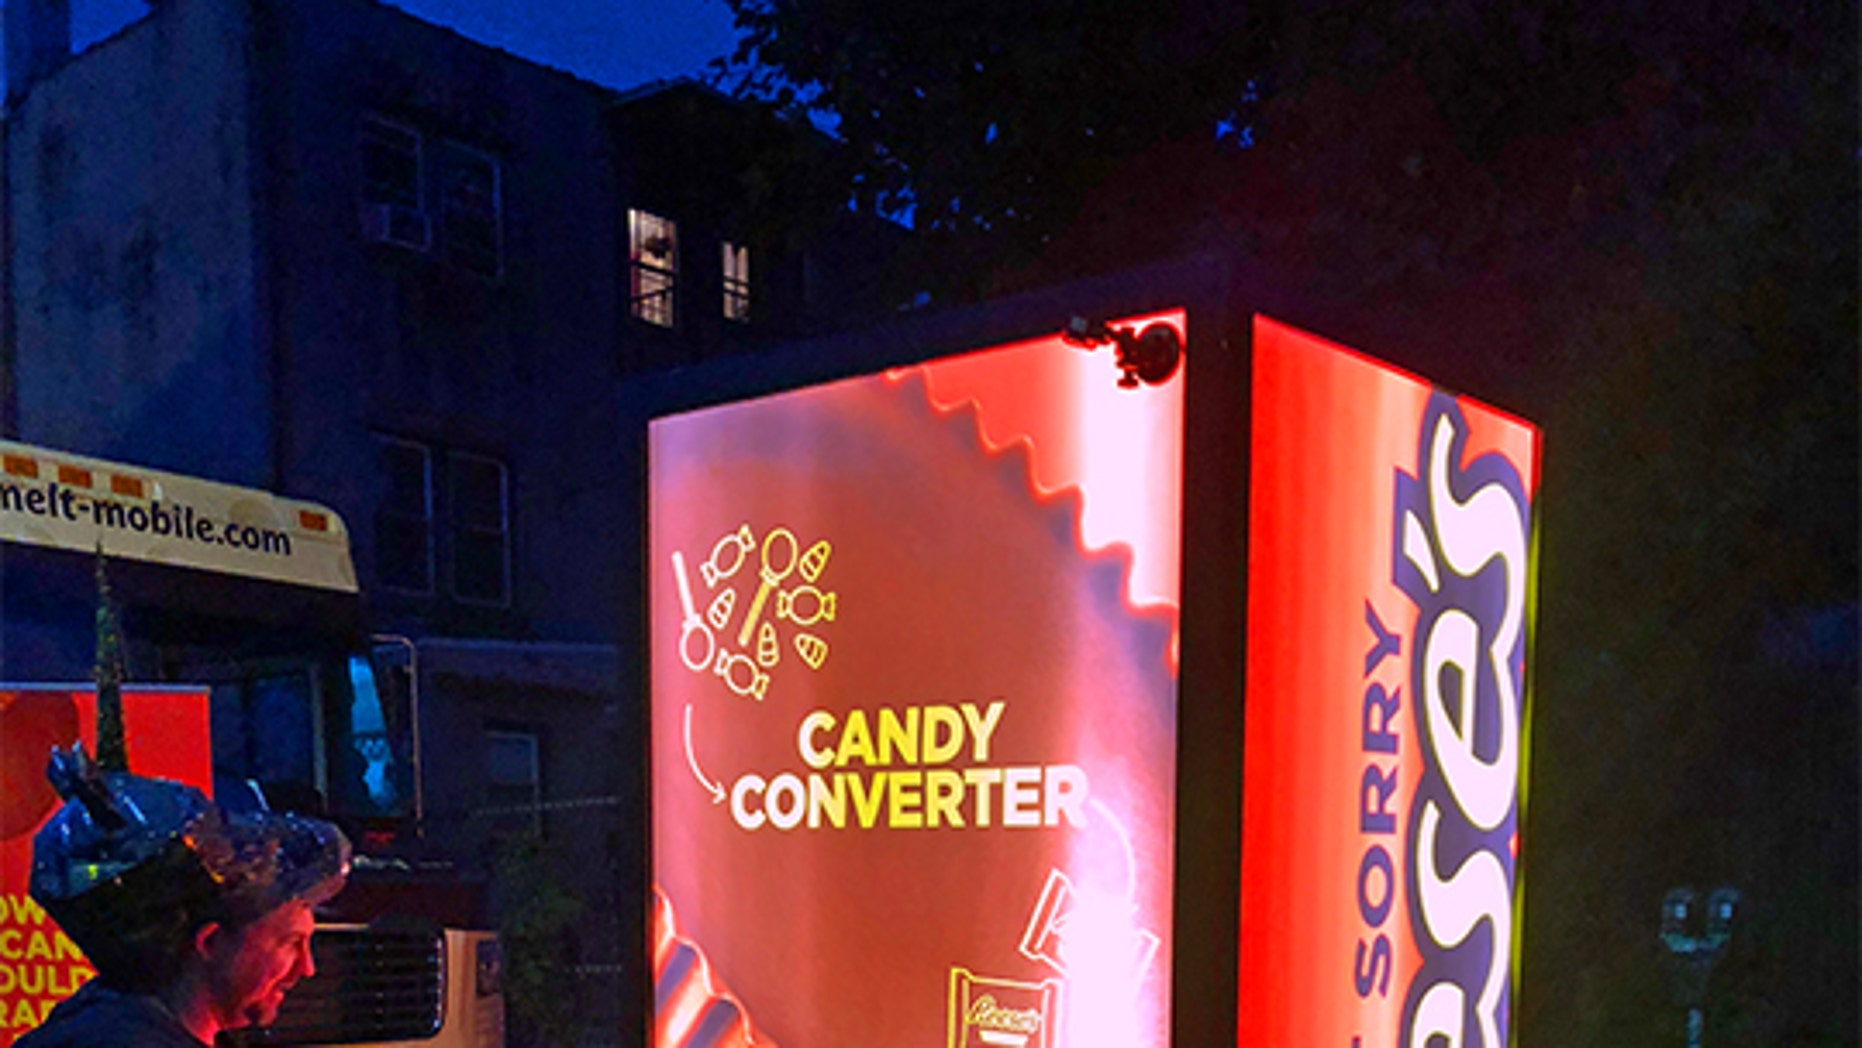 Swap out your unwanted candy for a Reese's with their candy converter.